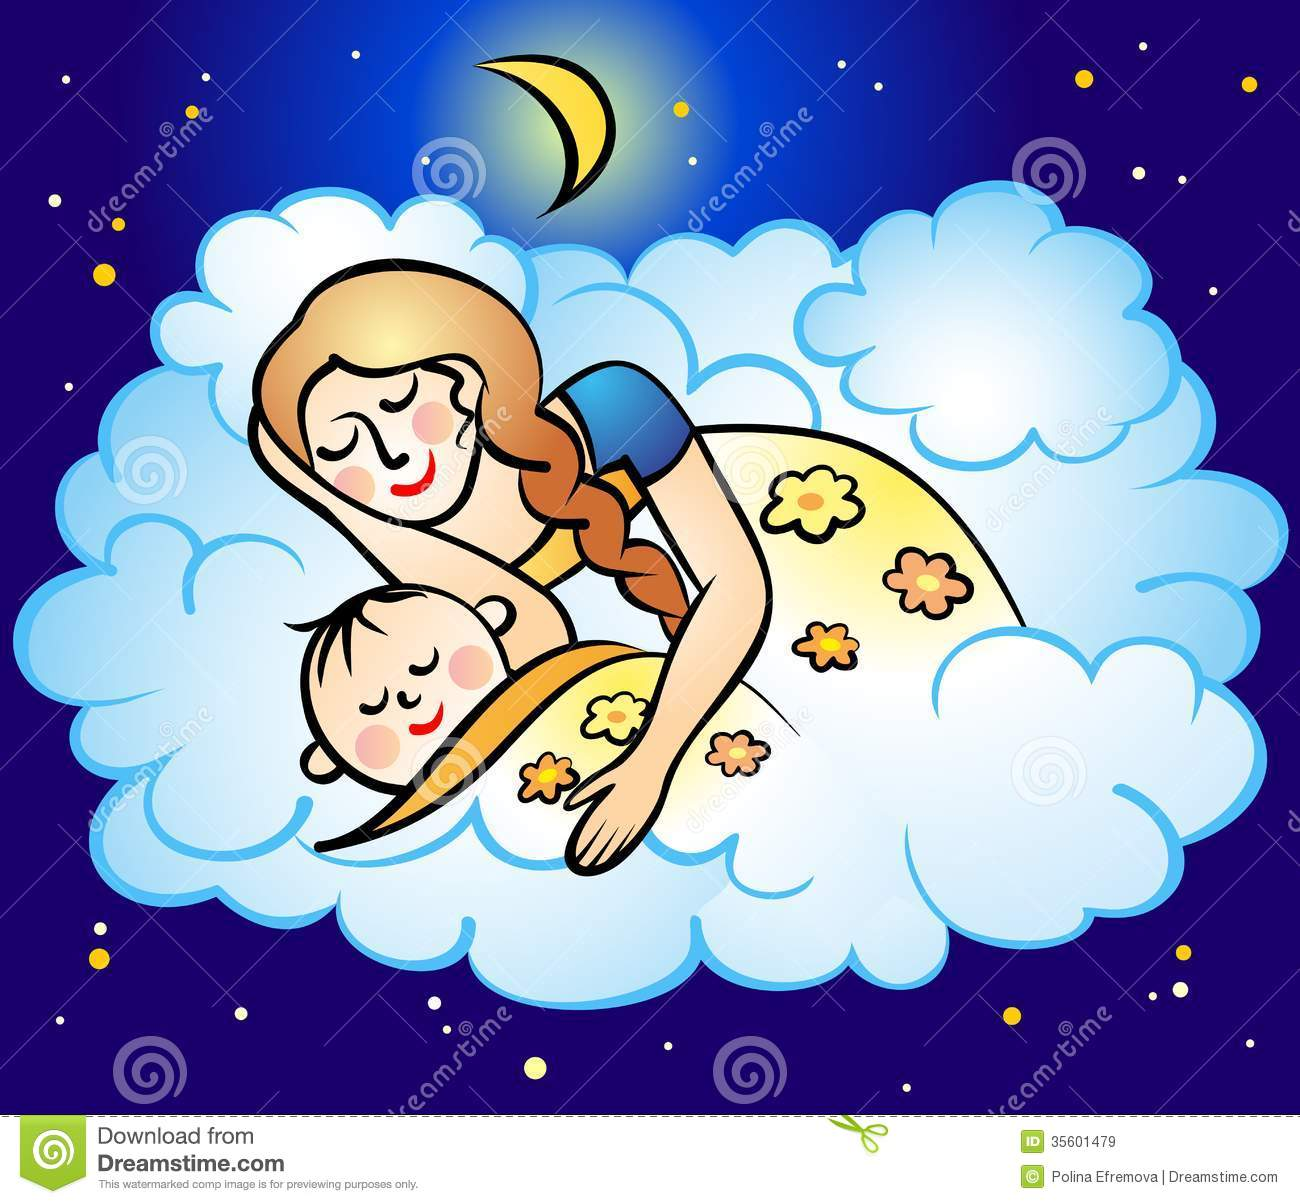 Mom and baby stock vector. Illustration of silence, love ...